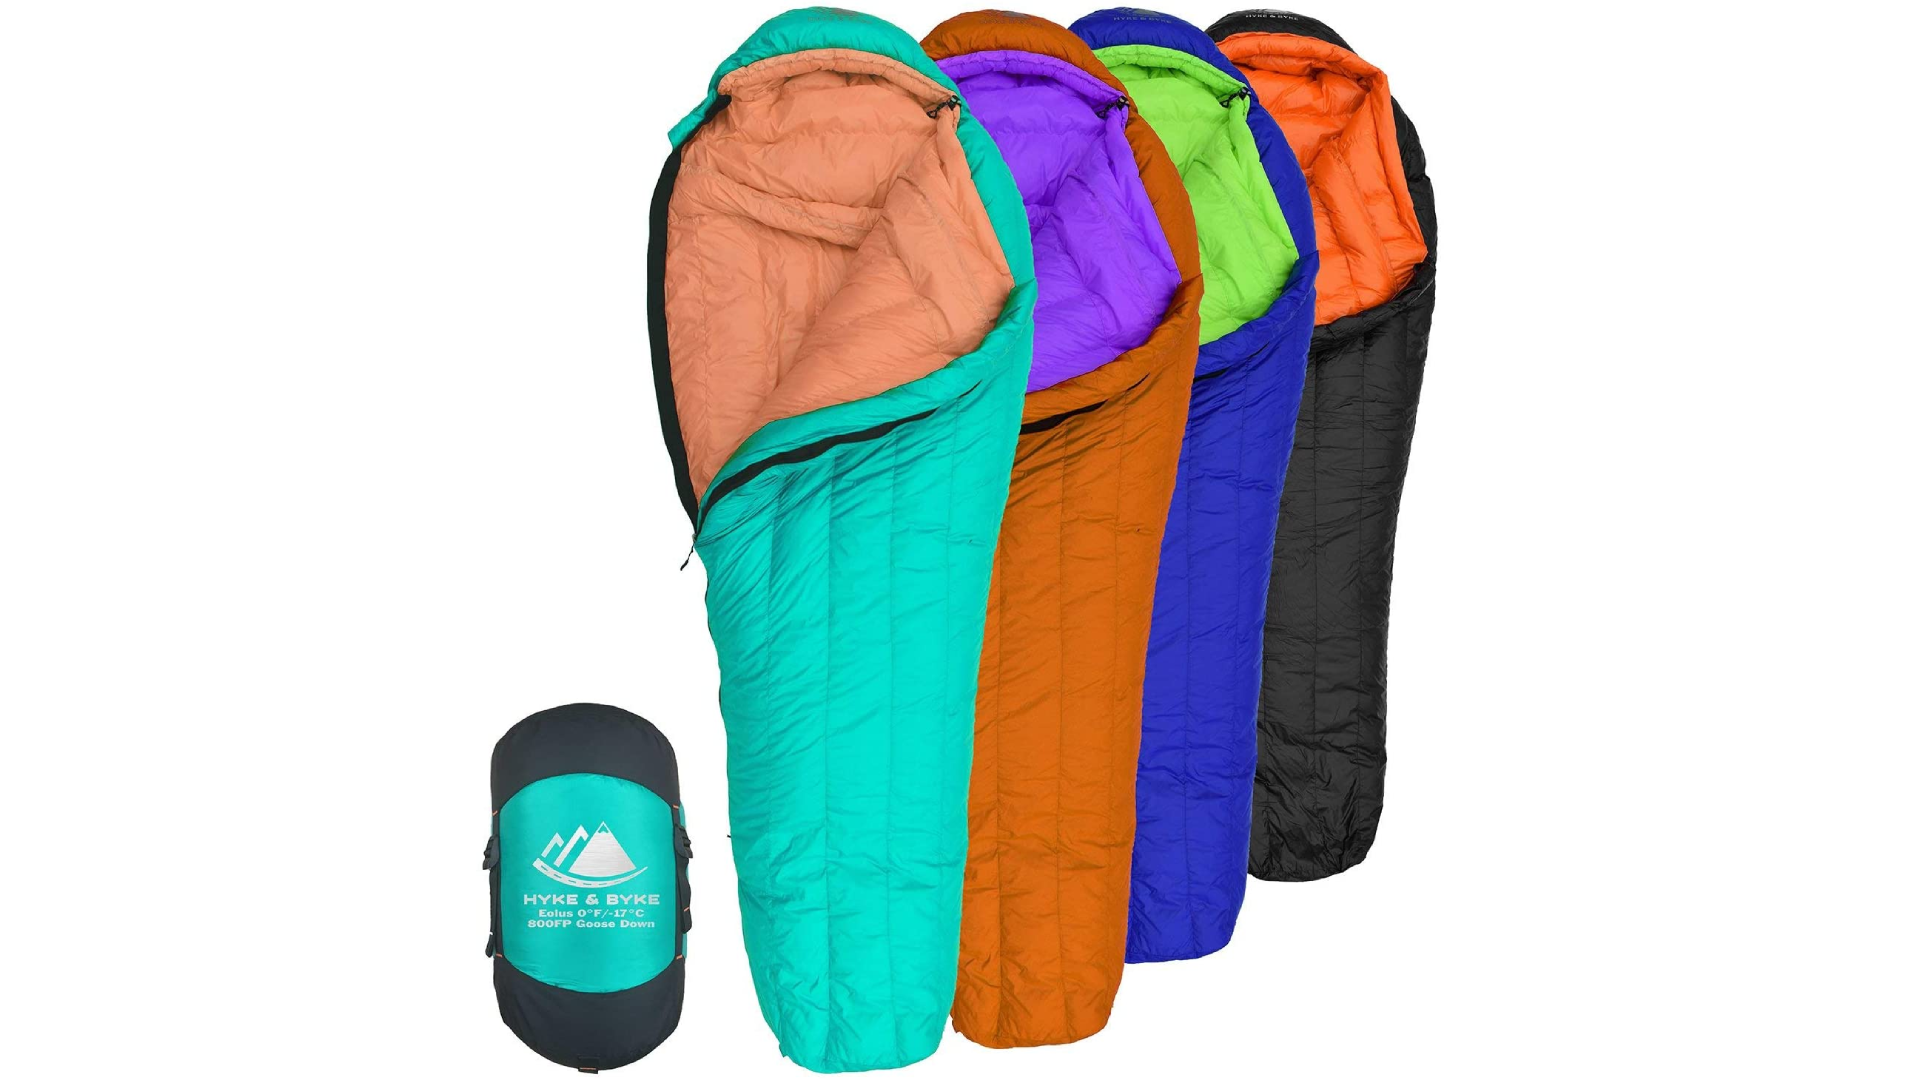 four colorful sleeping bags laid out and one rolled up and stuffed in a bag